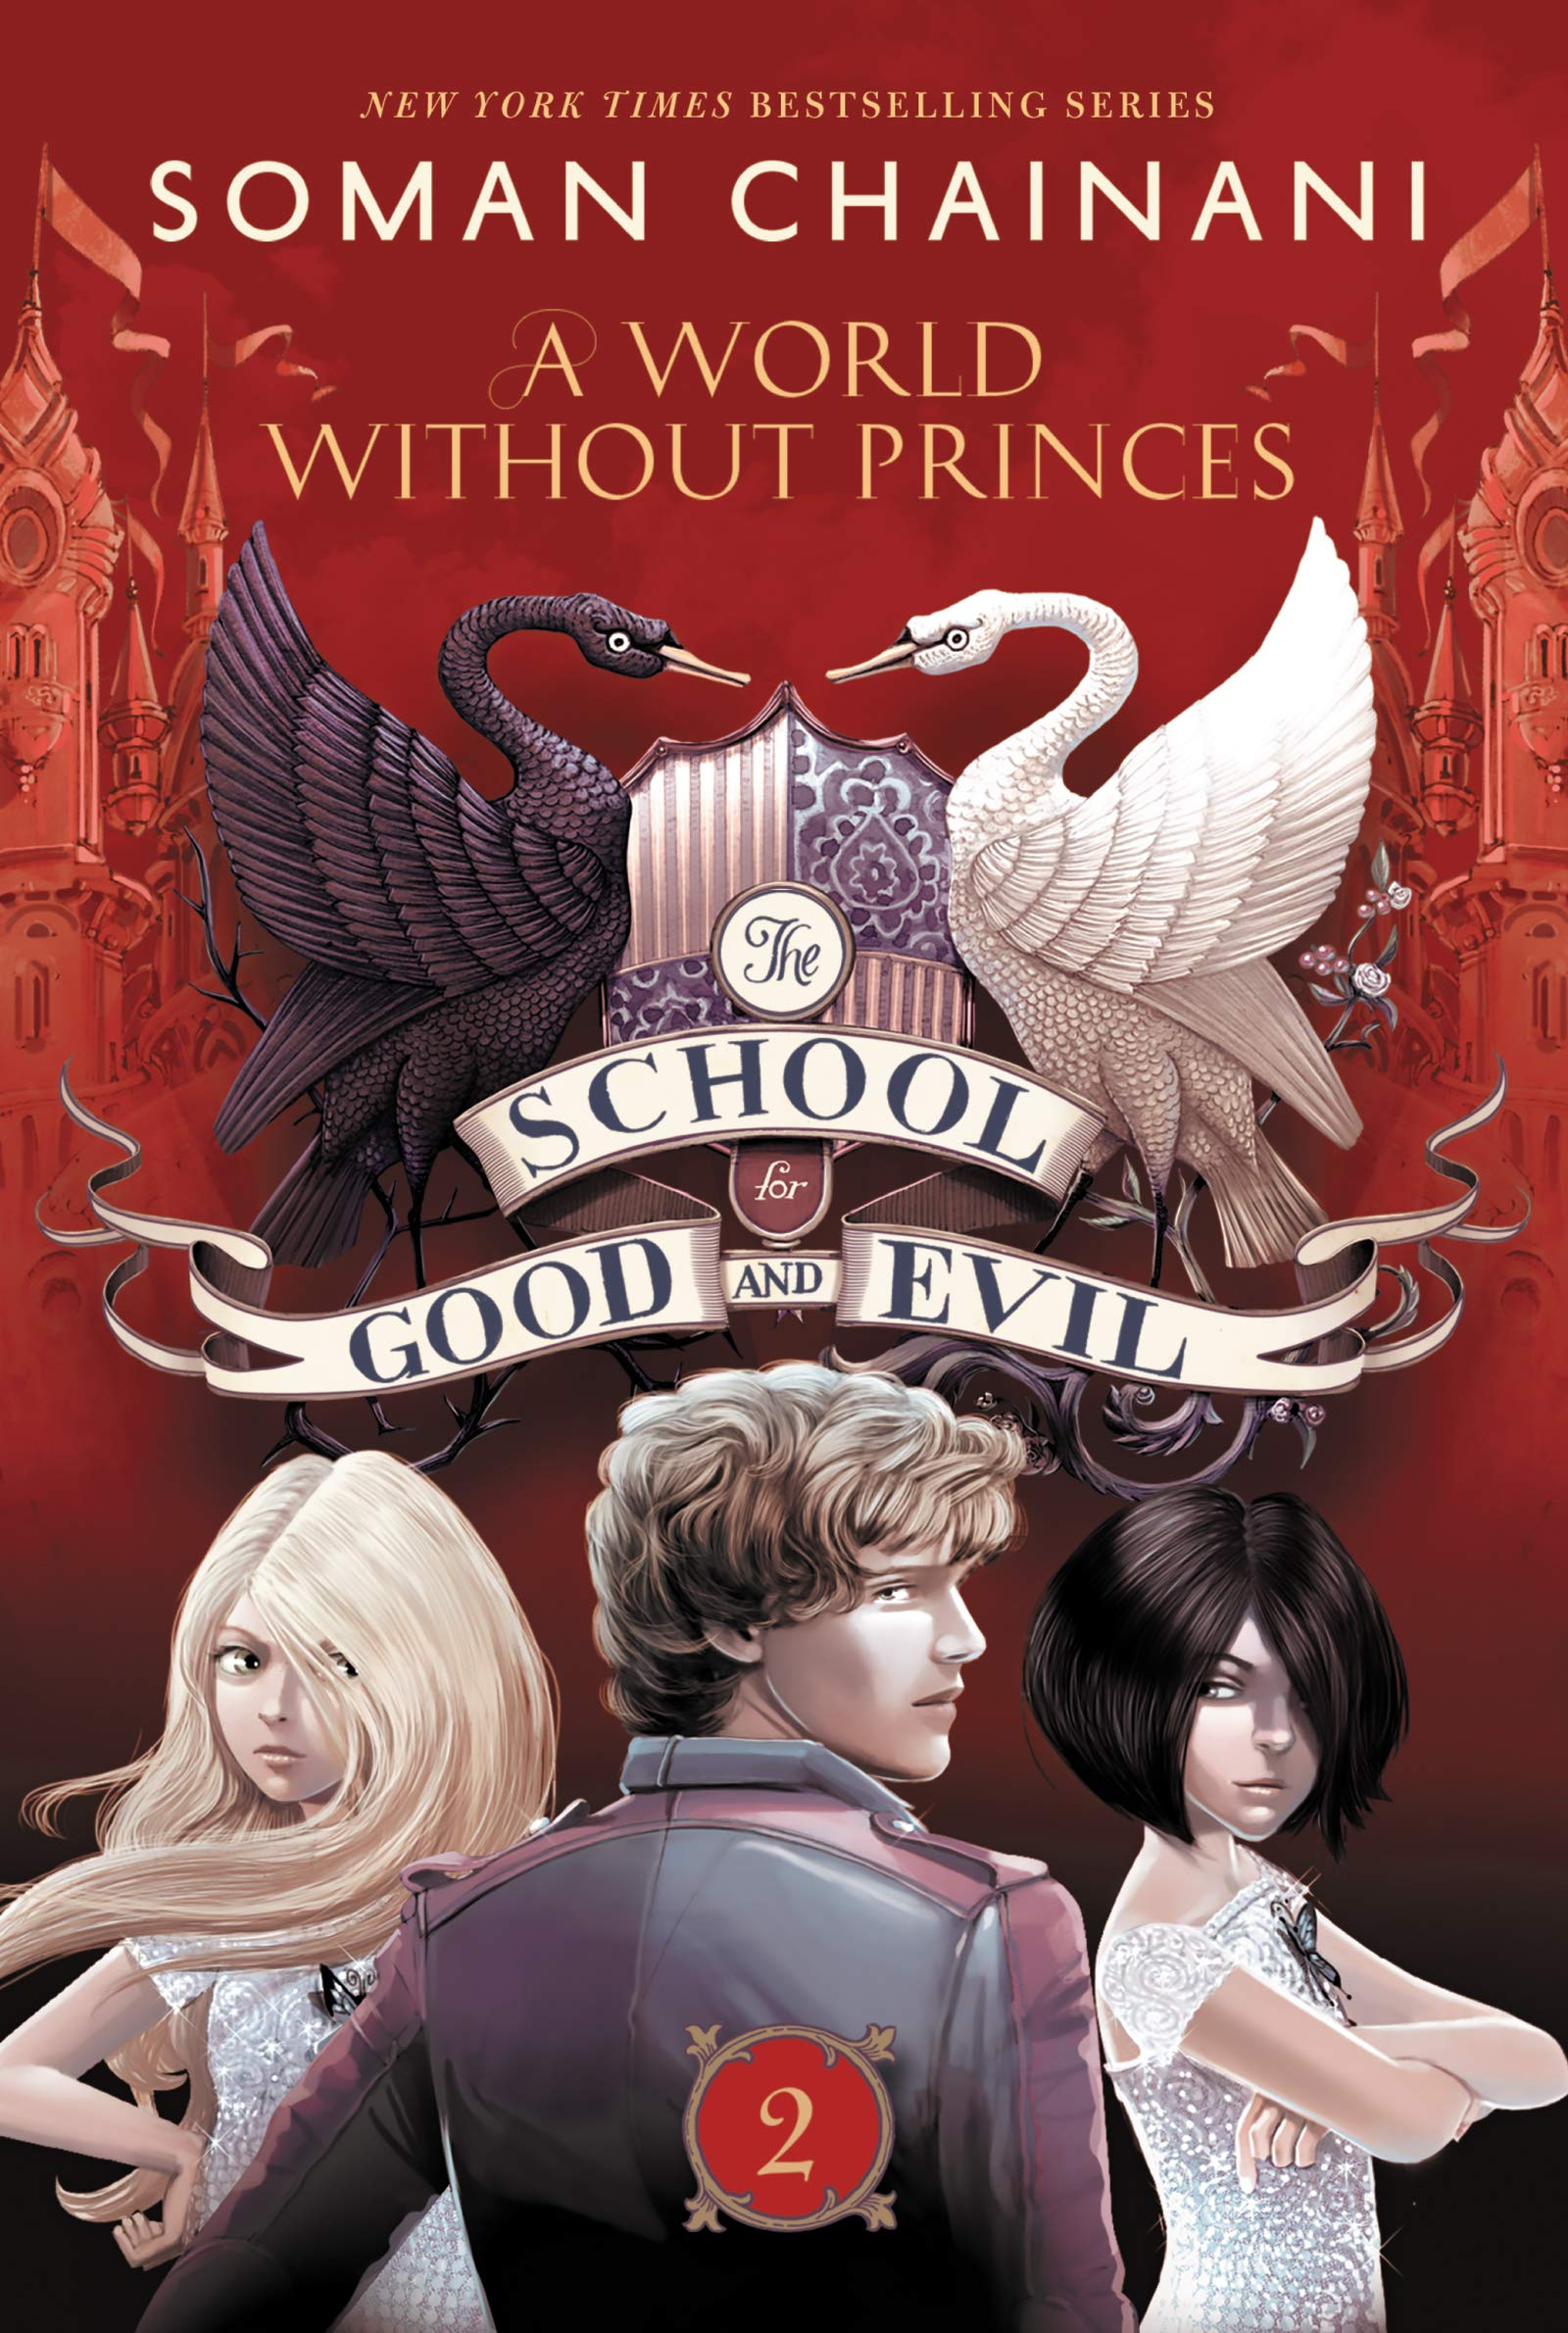 Read Online The School for Good and Evil #2: A World without Princes PDF